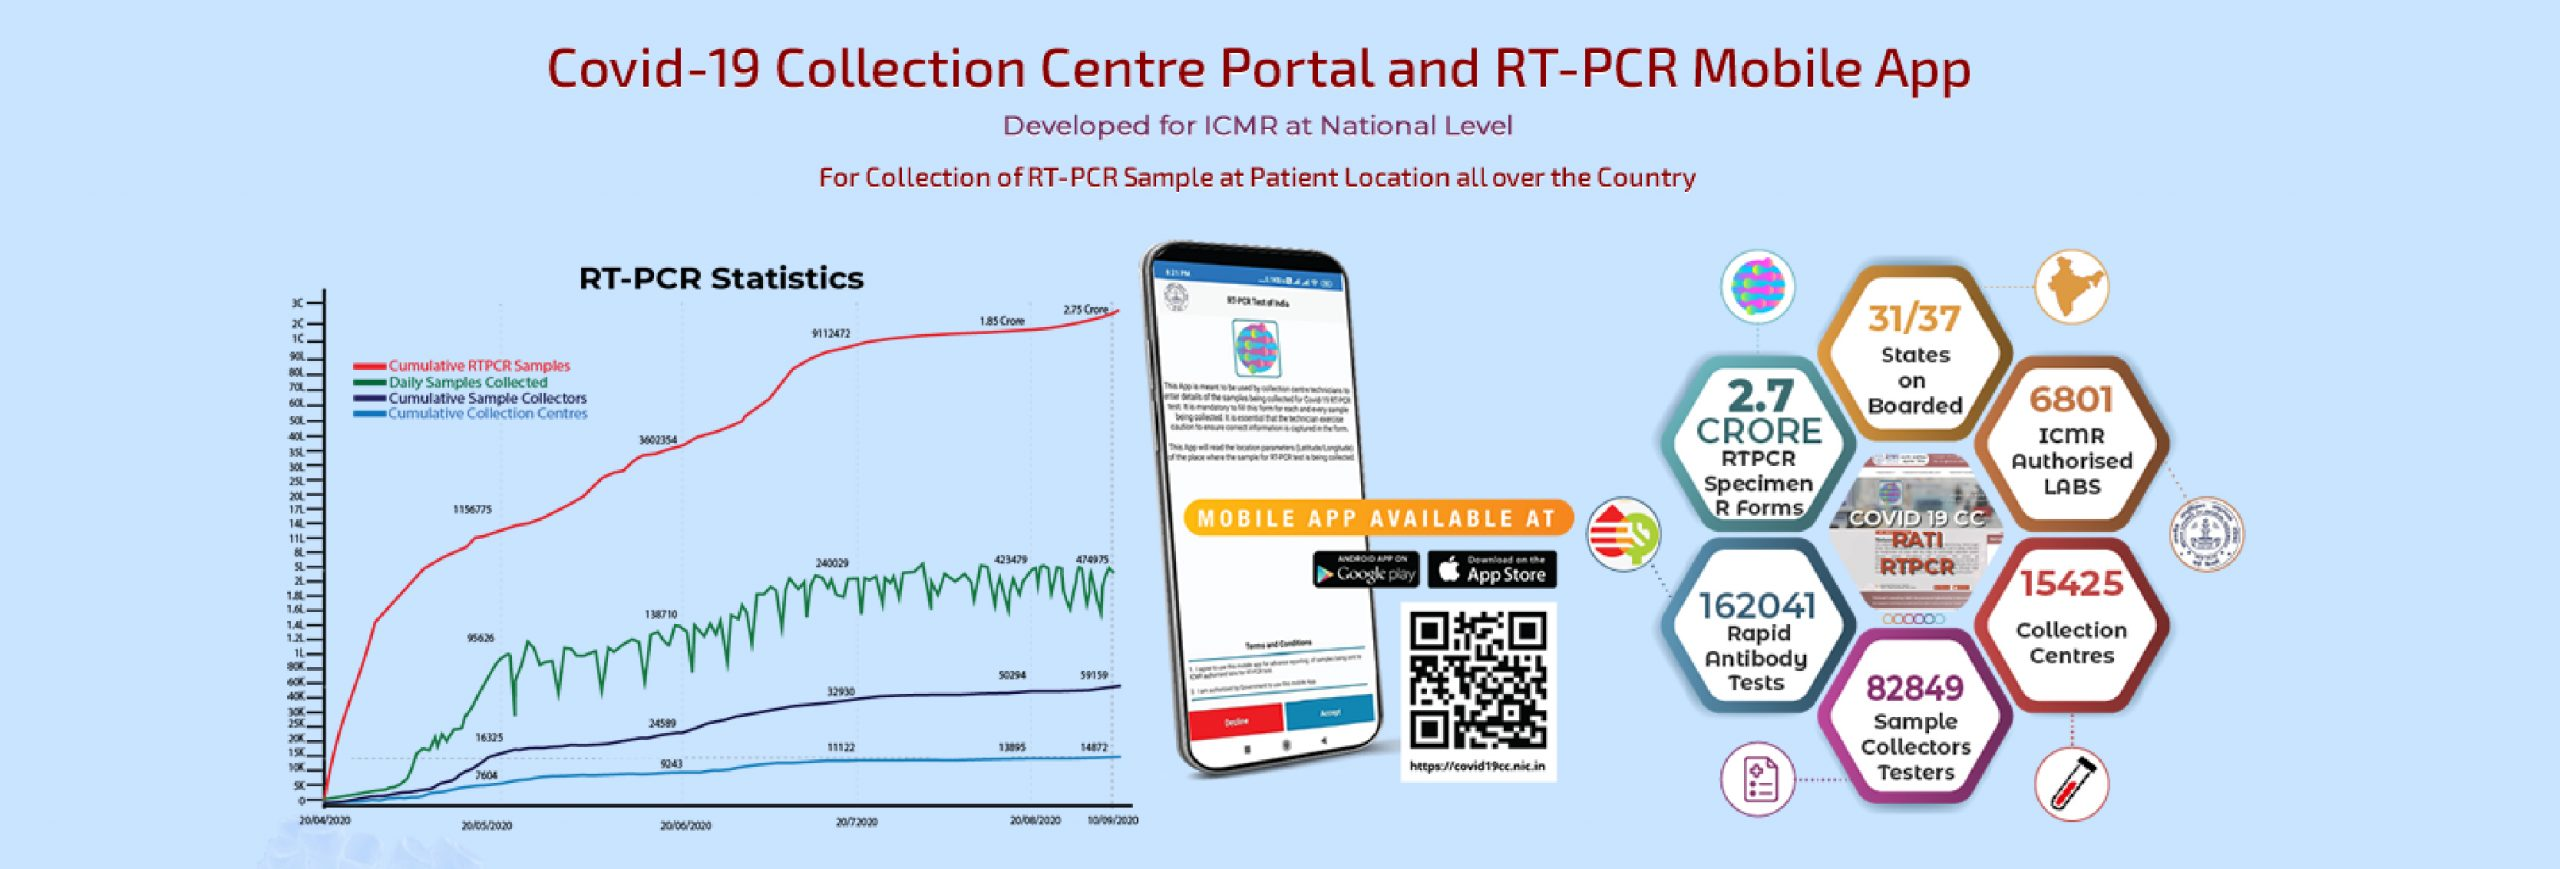 Image of Covid-19 Collection Centre Portal and RT-PCR Mobile App